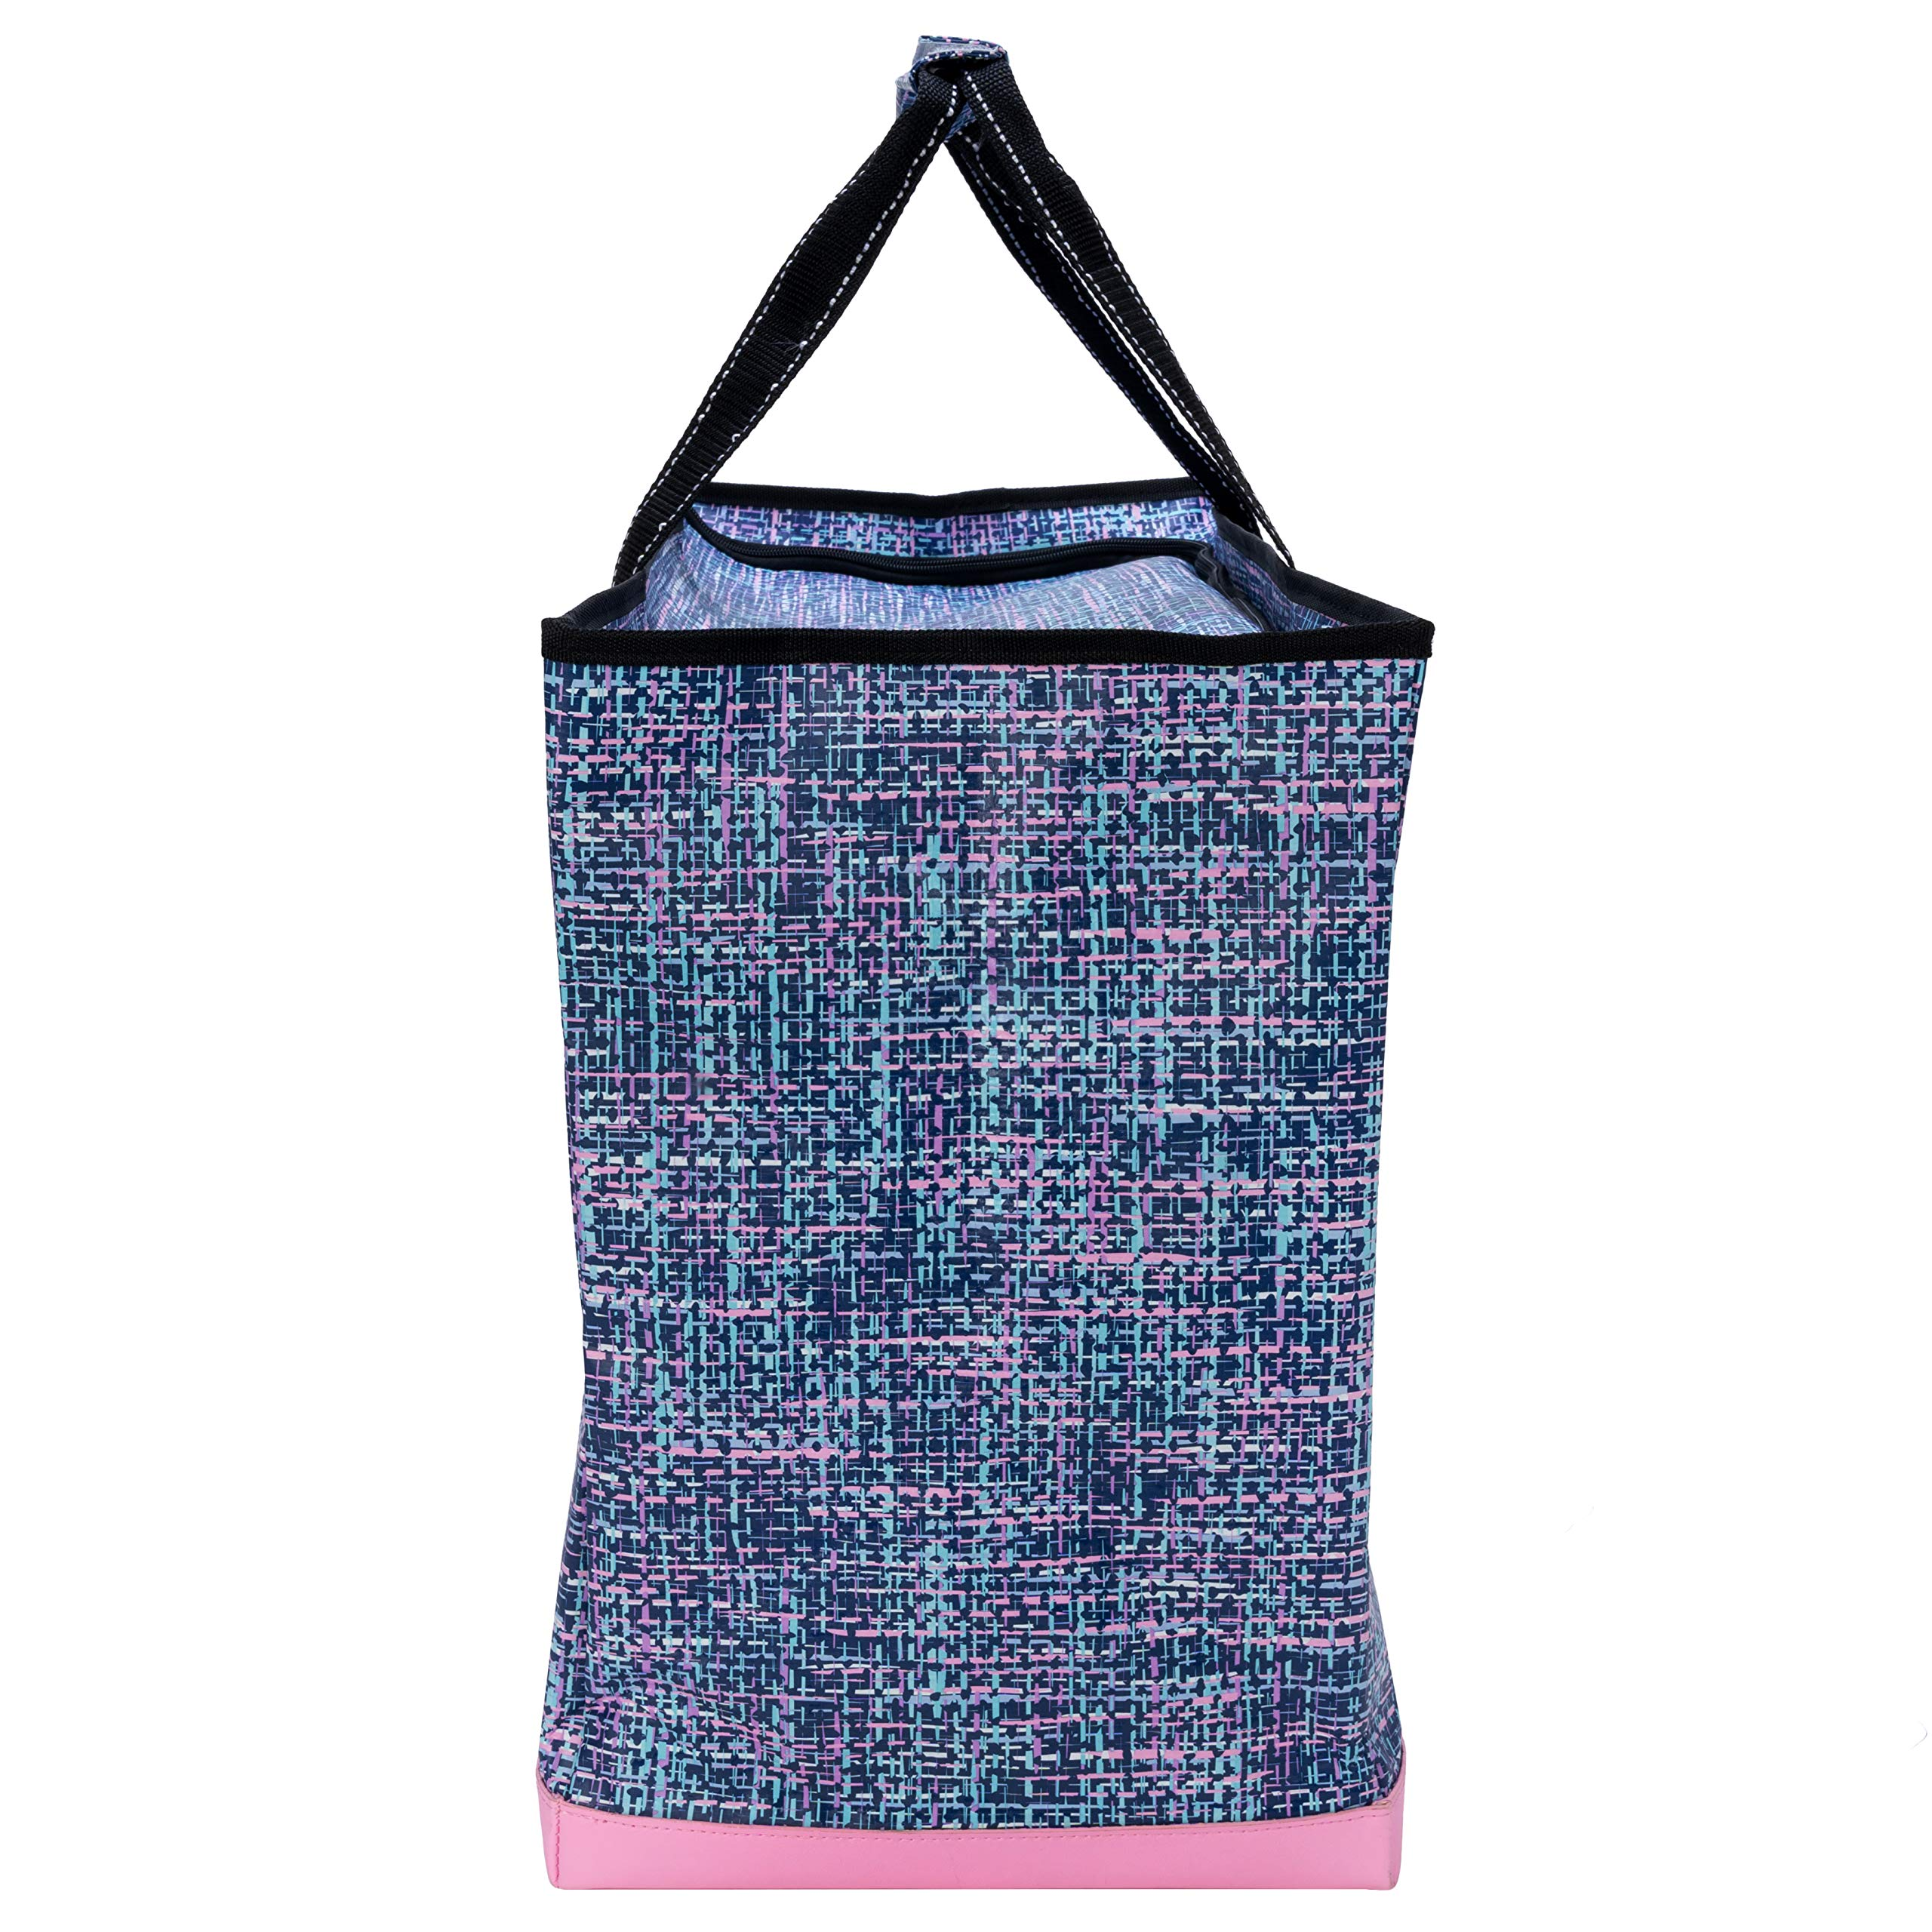 SCOUT 3 Girls Bag, Extra Large Water Resistant, Tote Bag, For the Beach, Pool and Everyday Use, Zips Closed, Tweedy Bird by SCOUT (Image #2)